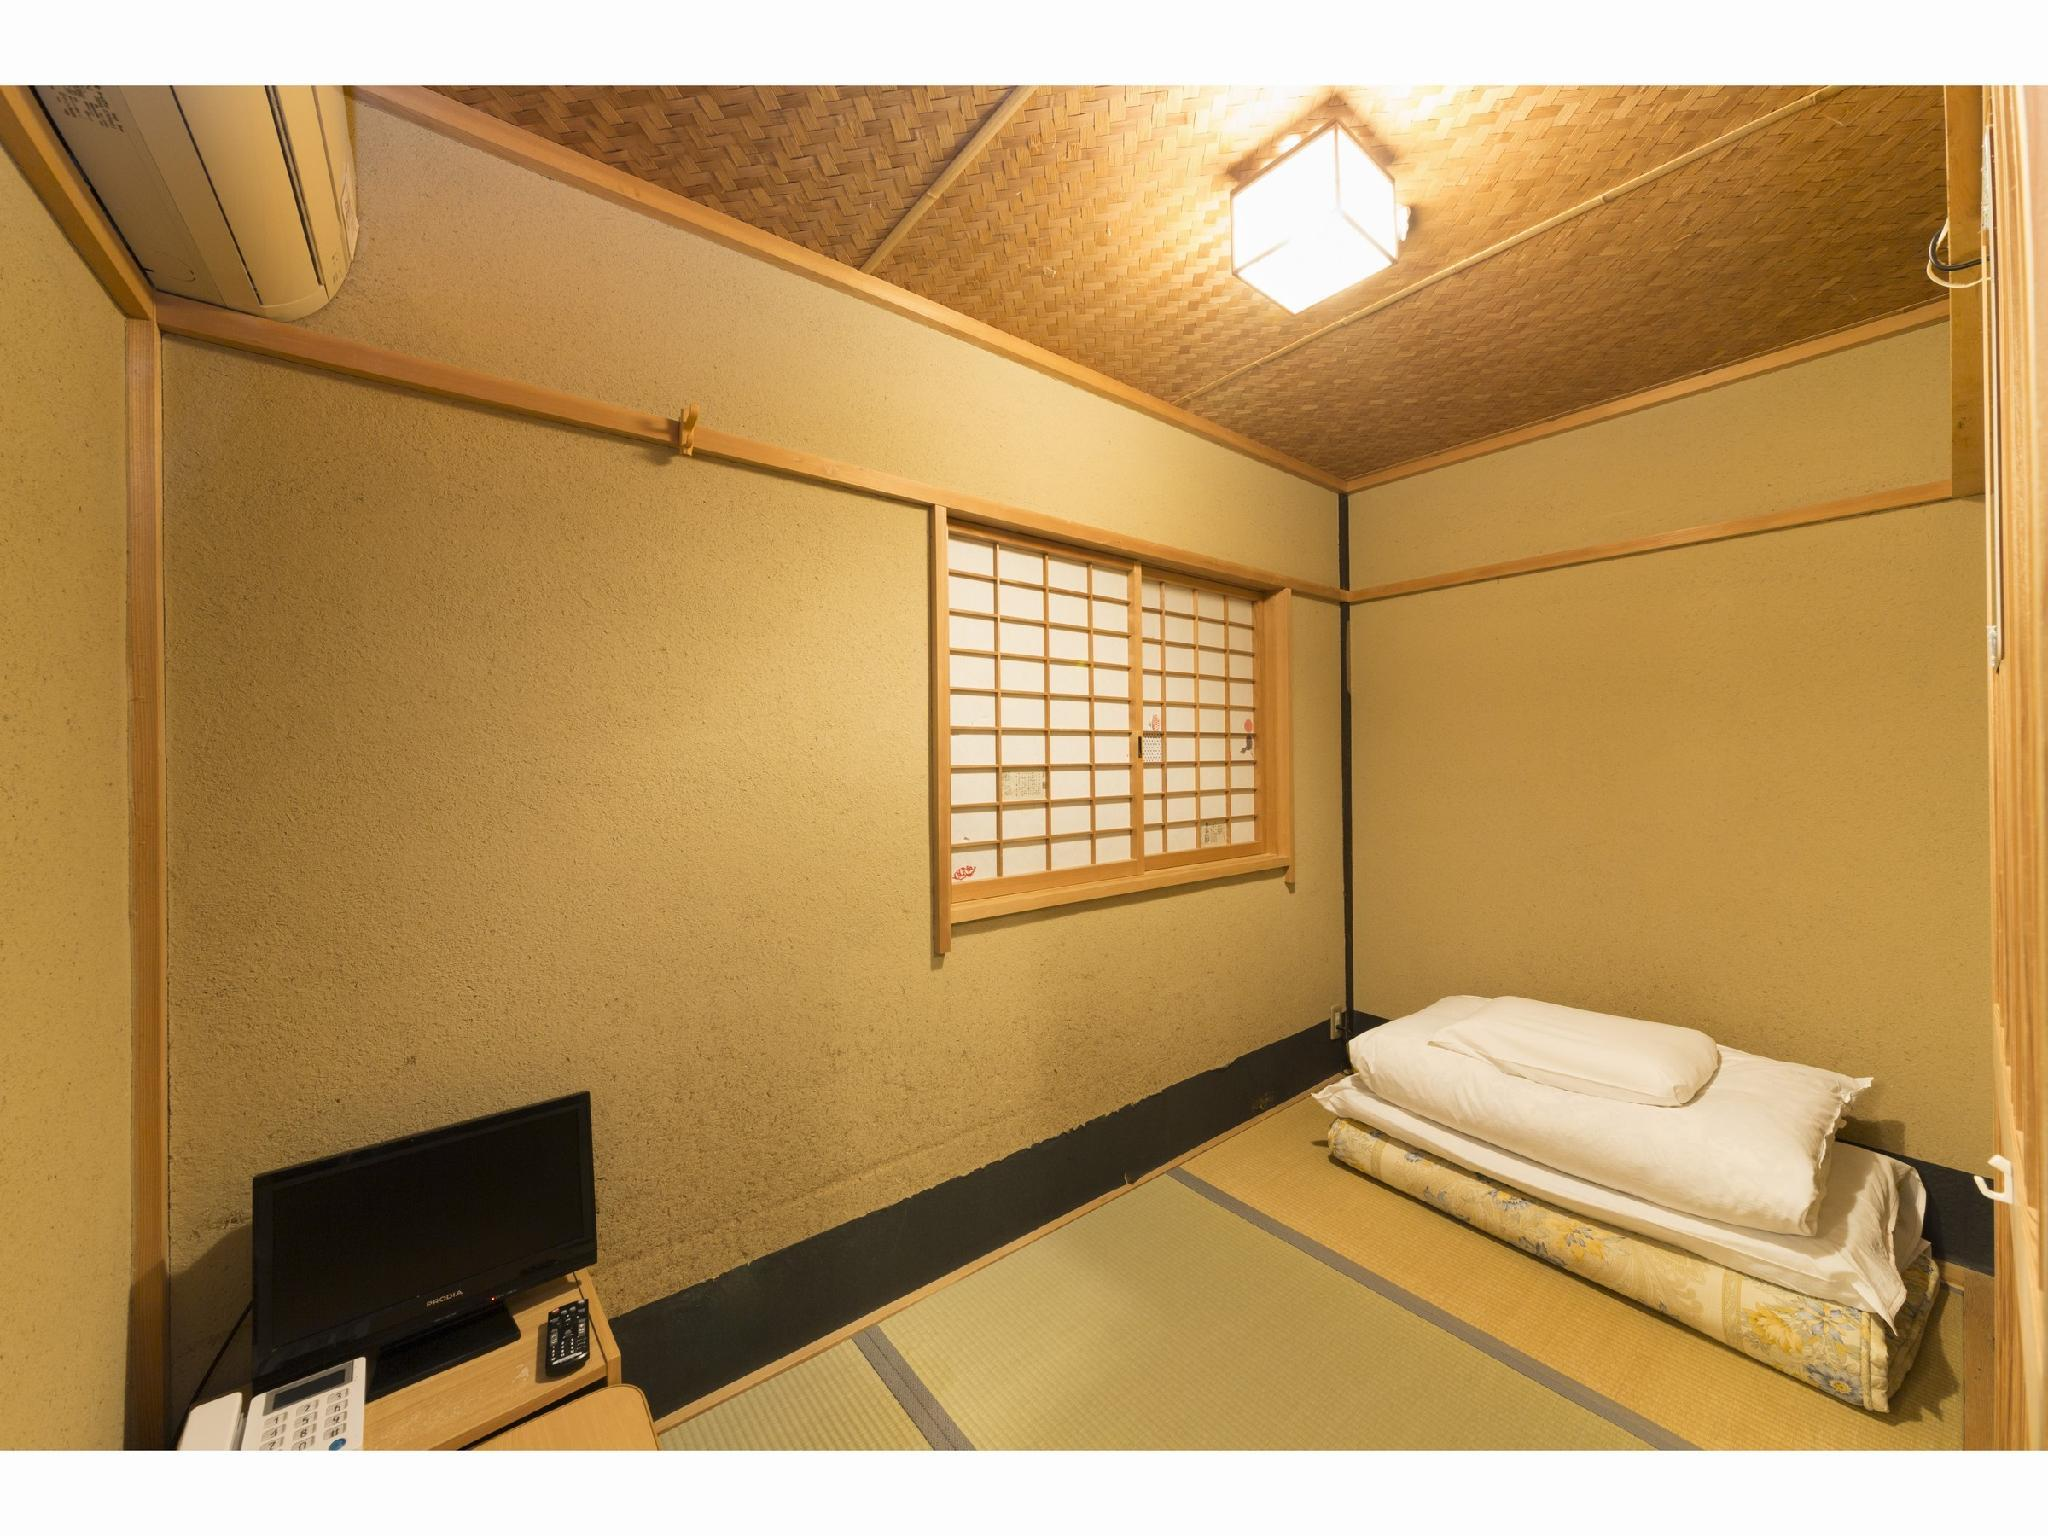 小型日式客房(限住1人) - 有浴缸 (Small Japanese Room with Bath for 1 person)